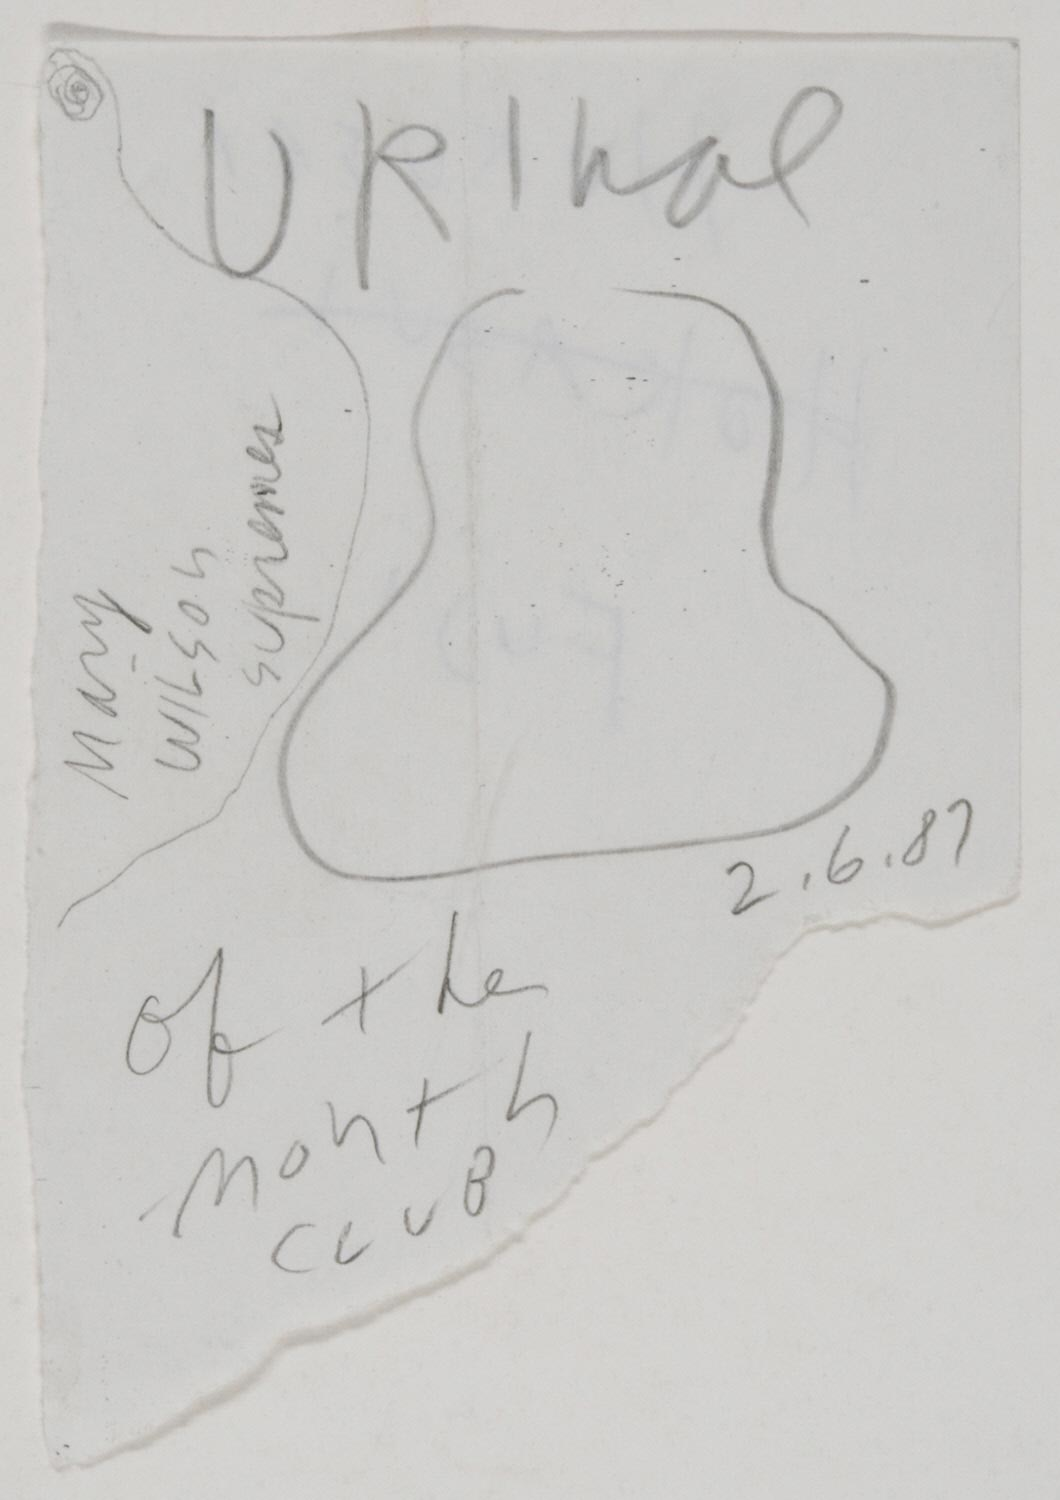 Urinal of the Month Club 2.6.87